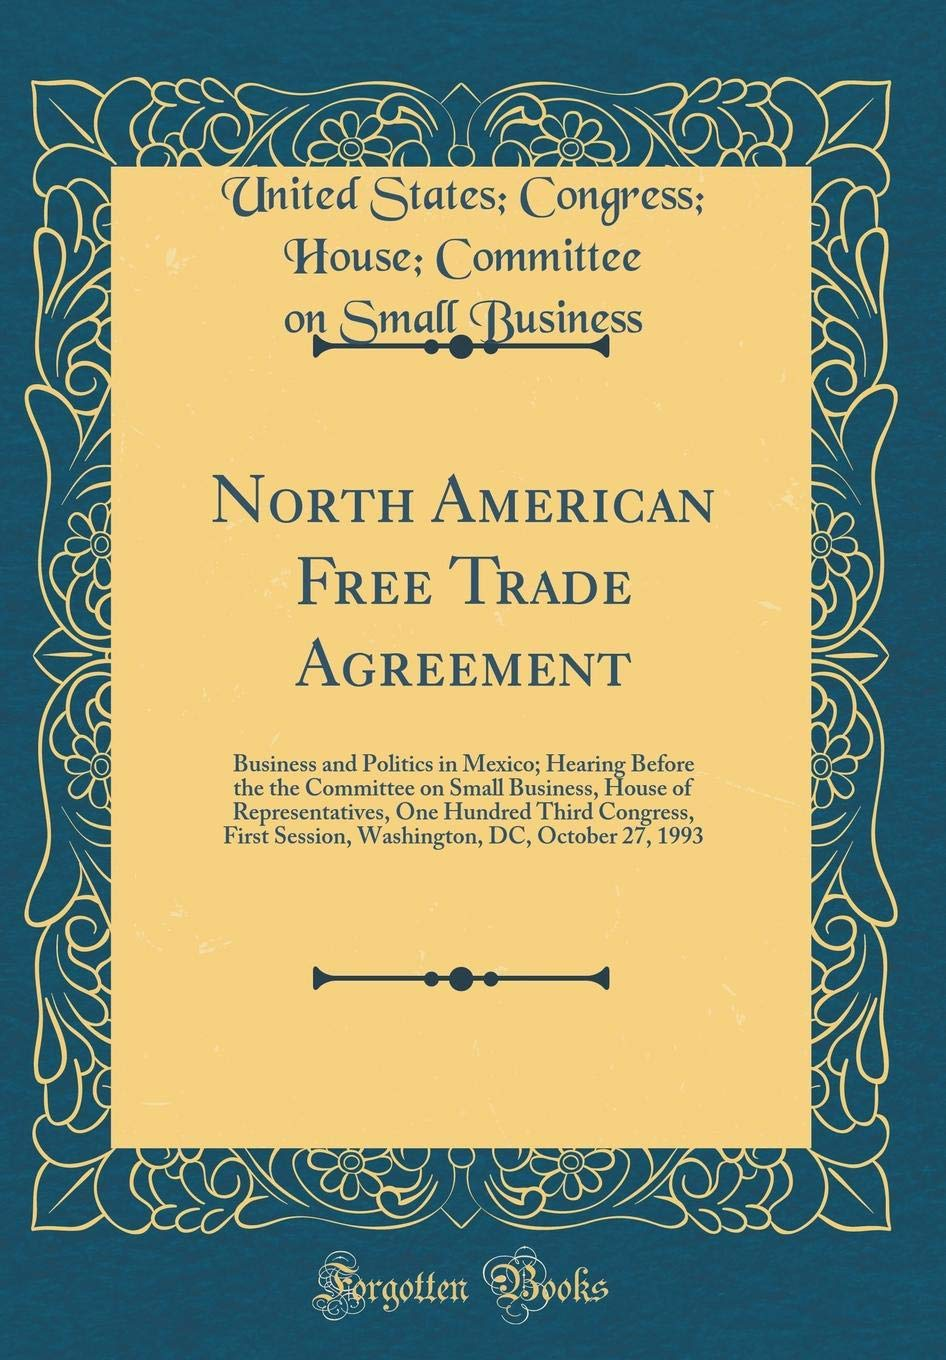 North American Free Trade Agreement: Business and Politics in Mexico; Hearing Before the the Committee on Small Business, House of Representatives, ... DC, October 27, 1993 (Classic Reprint) pdf epub